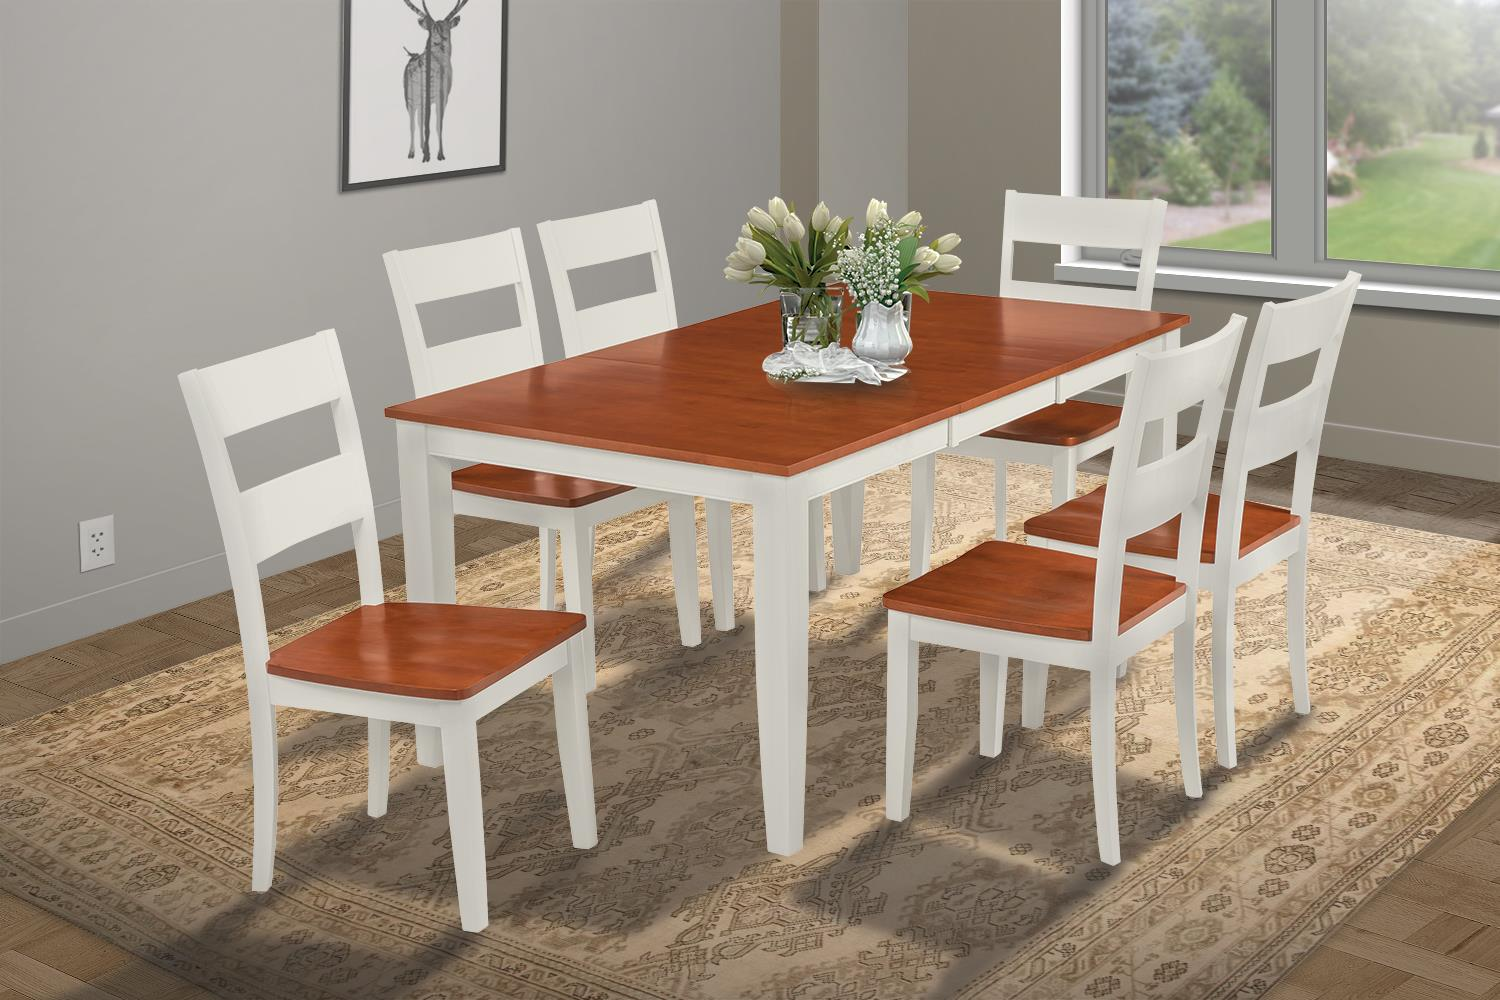 7 Piece Dining Room Set Table With A Butterfly Leaf And 6 Dining Chairs-Finish:White Cherry,Shape:Rectangular by M&D Furniture